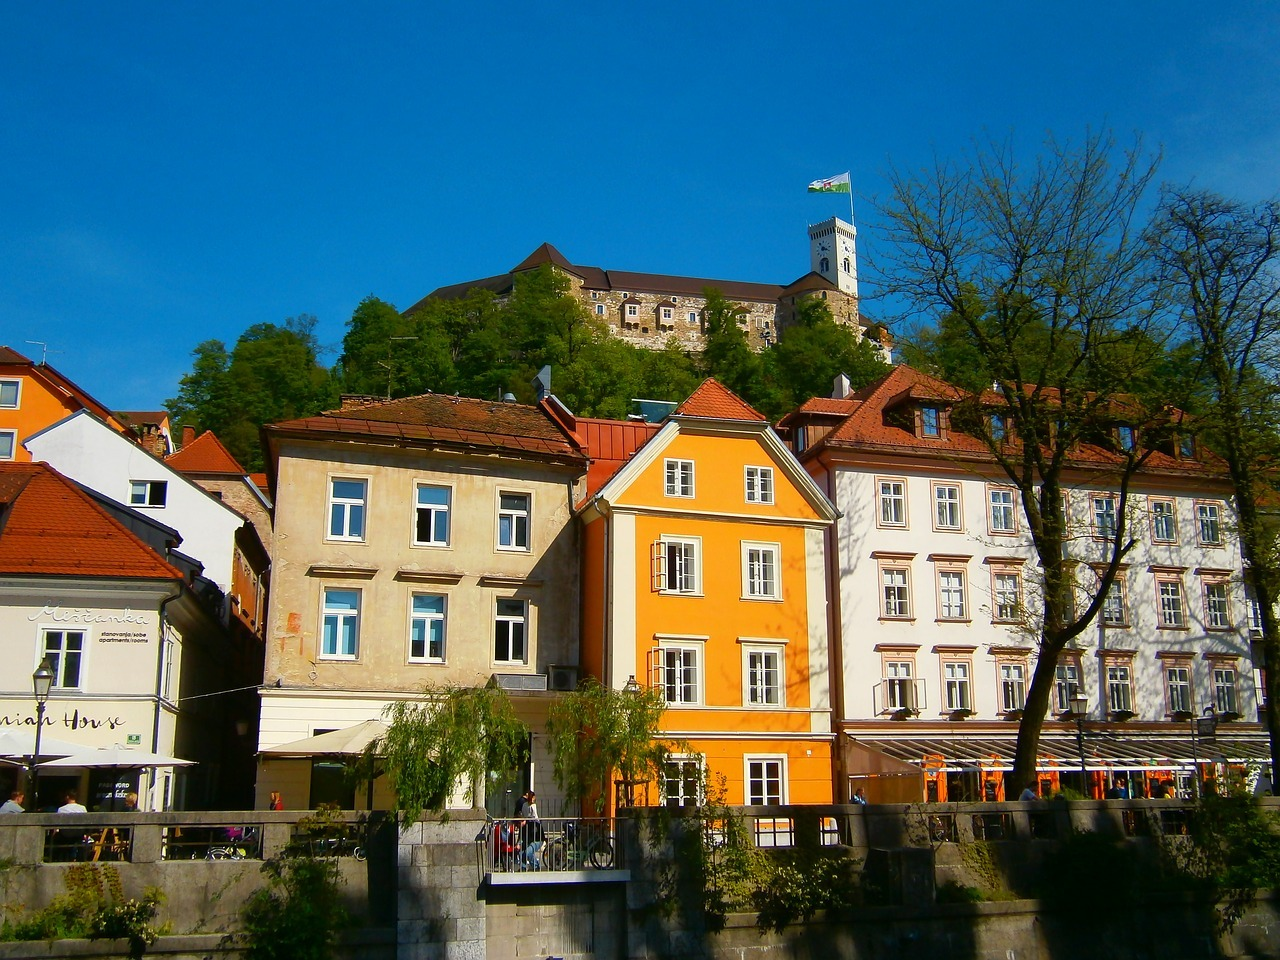 Homes in Ljubljana